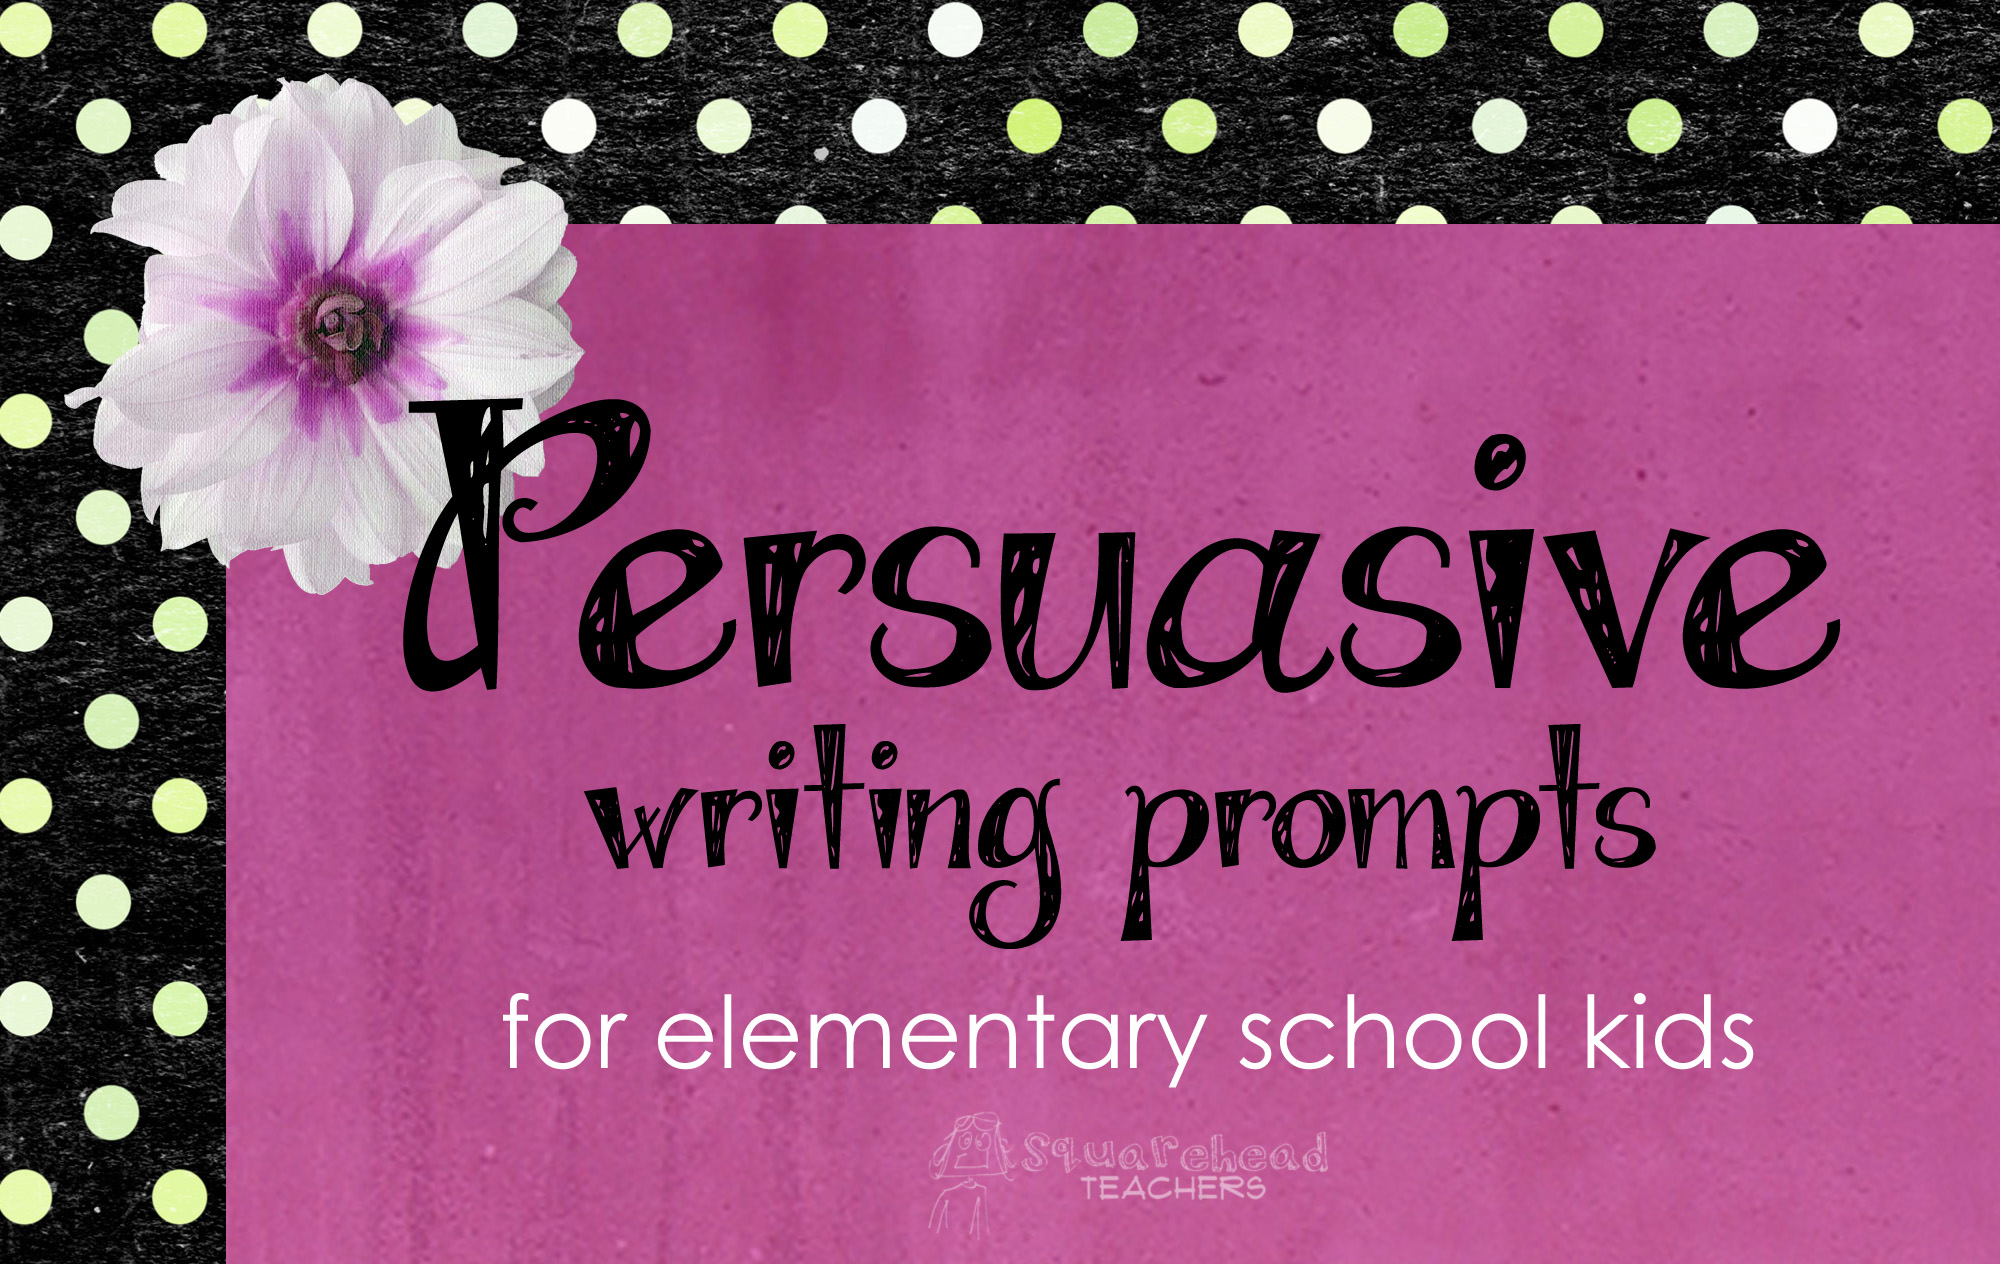 writing a persuasive essay elementary school How to write a persuasive essay on school uniforms one of the most popular topic for essays during elementary, middle, or high school is school uniforms.